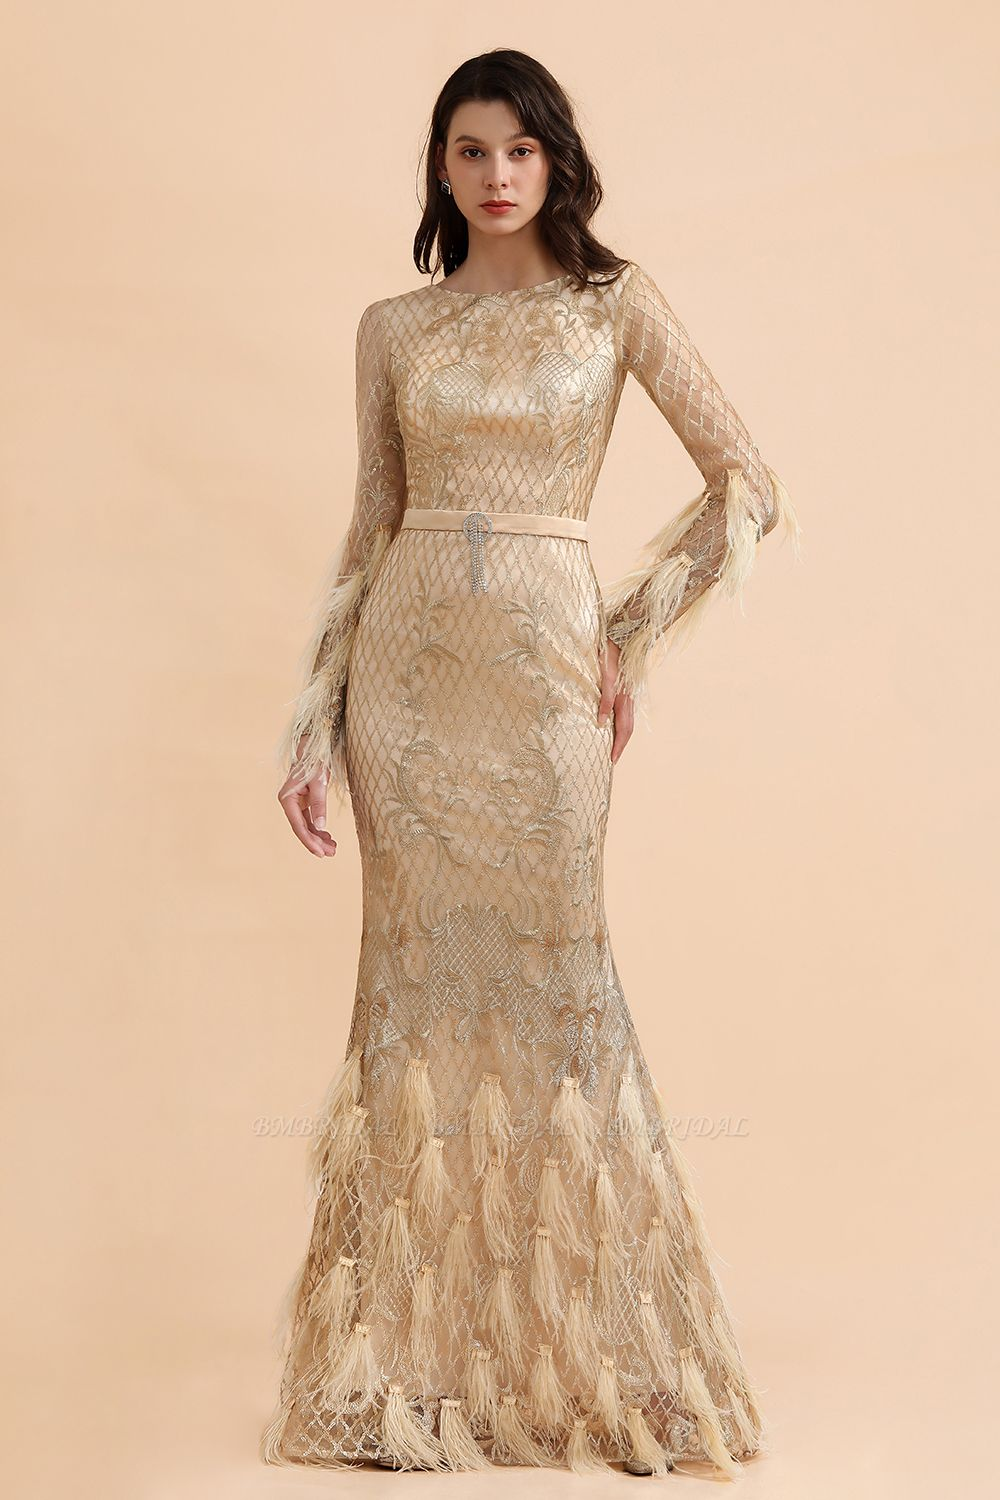 BMbridal Glamorous Jewel Lace Appliques Prom Dresses Long Sleeves Mermaid Formal Dresses with Fur